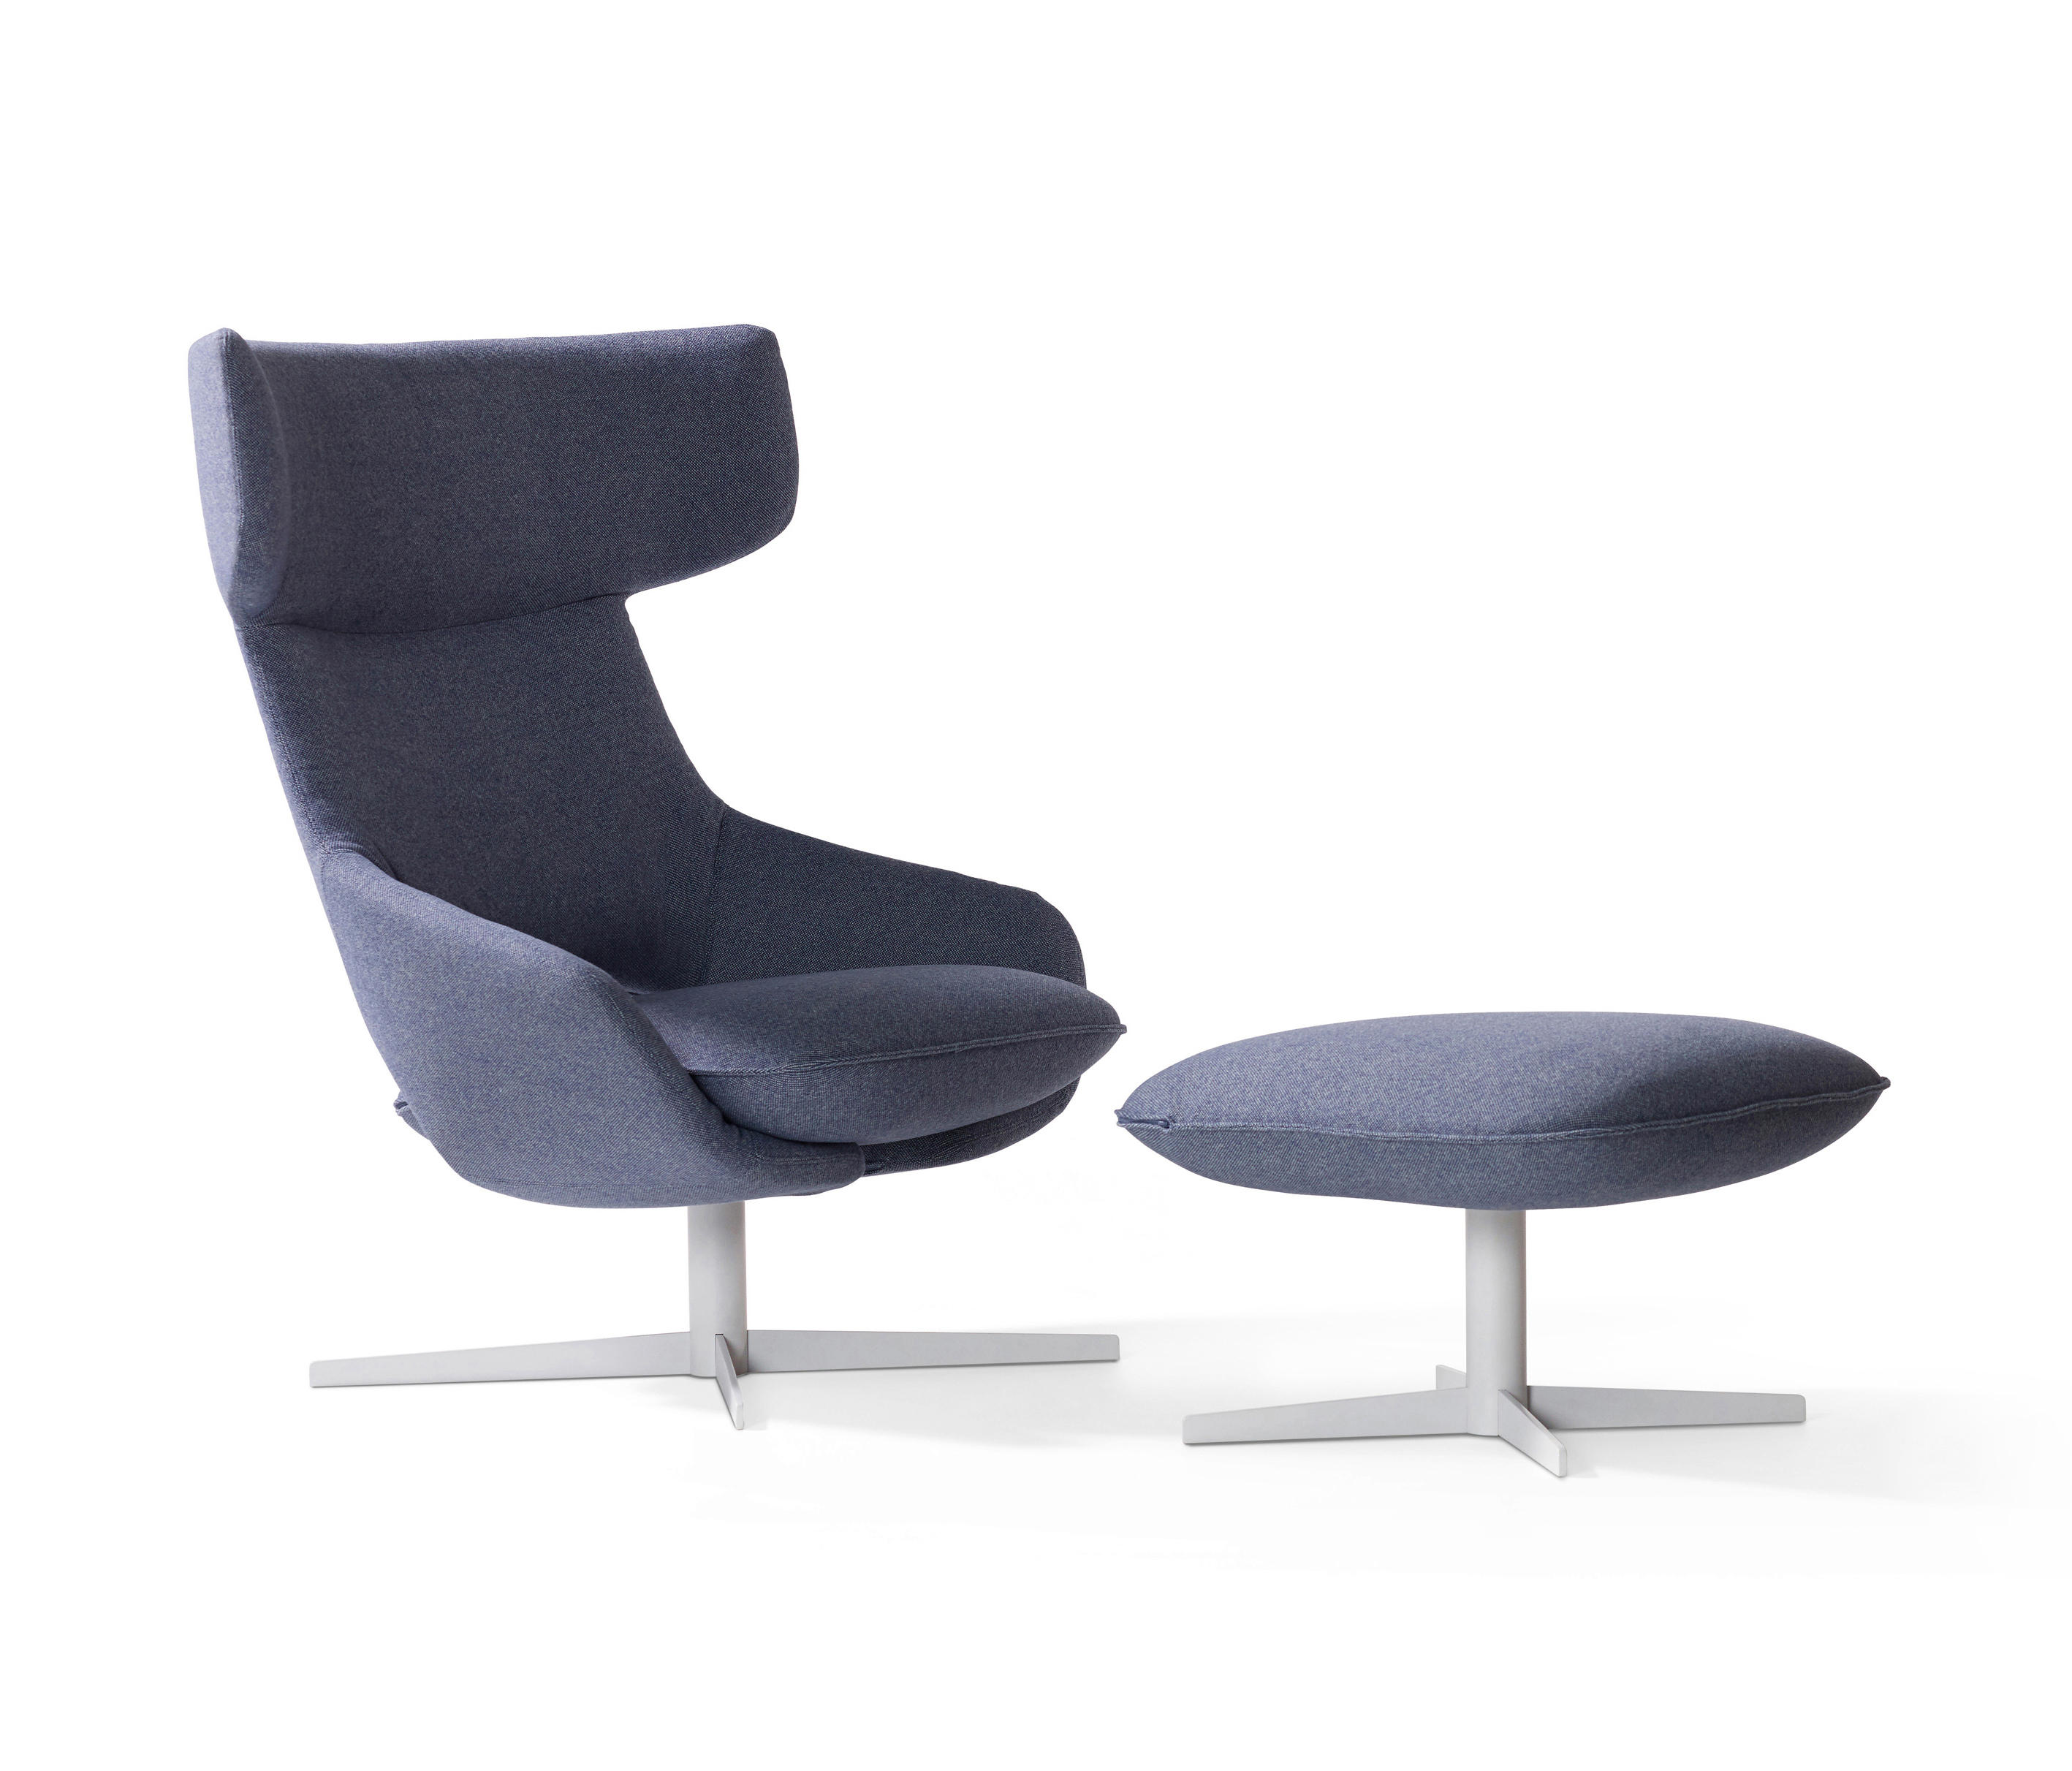 Kalm Lounge Chairs From Artifort Architonic